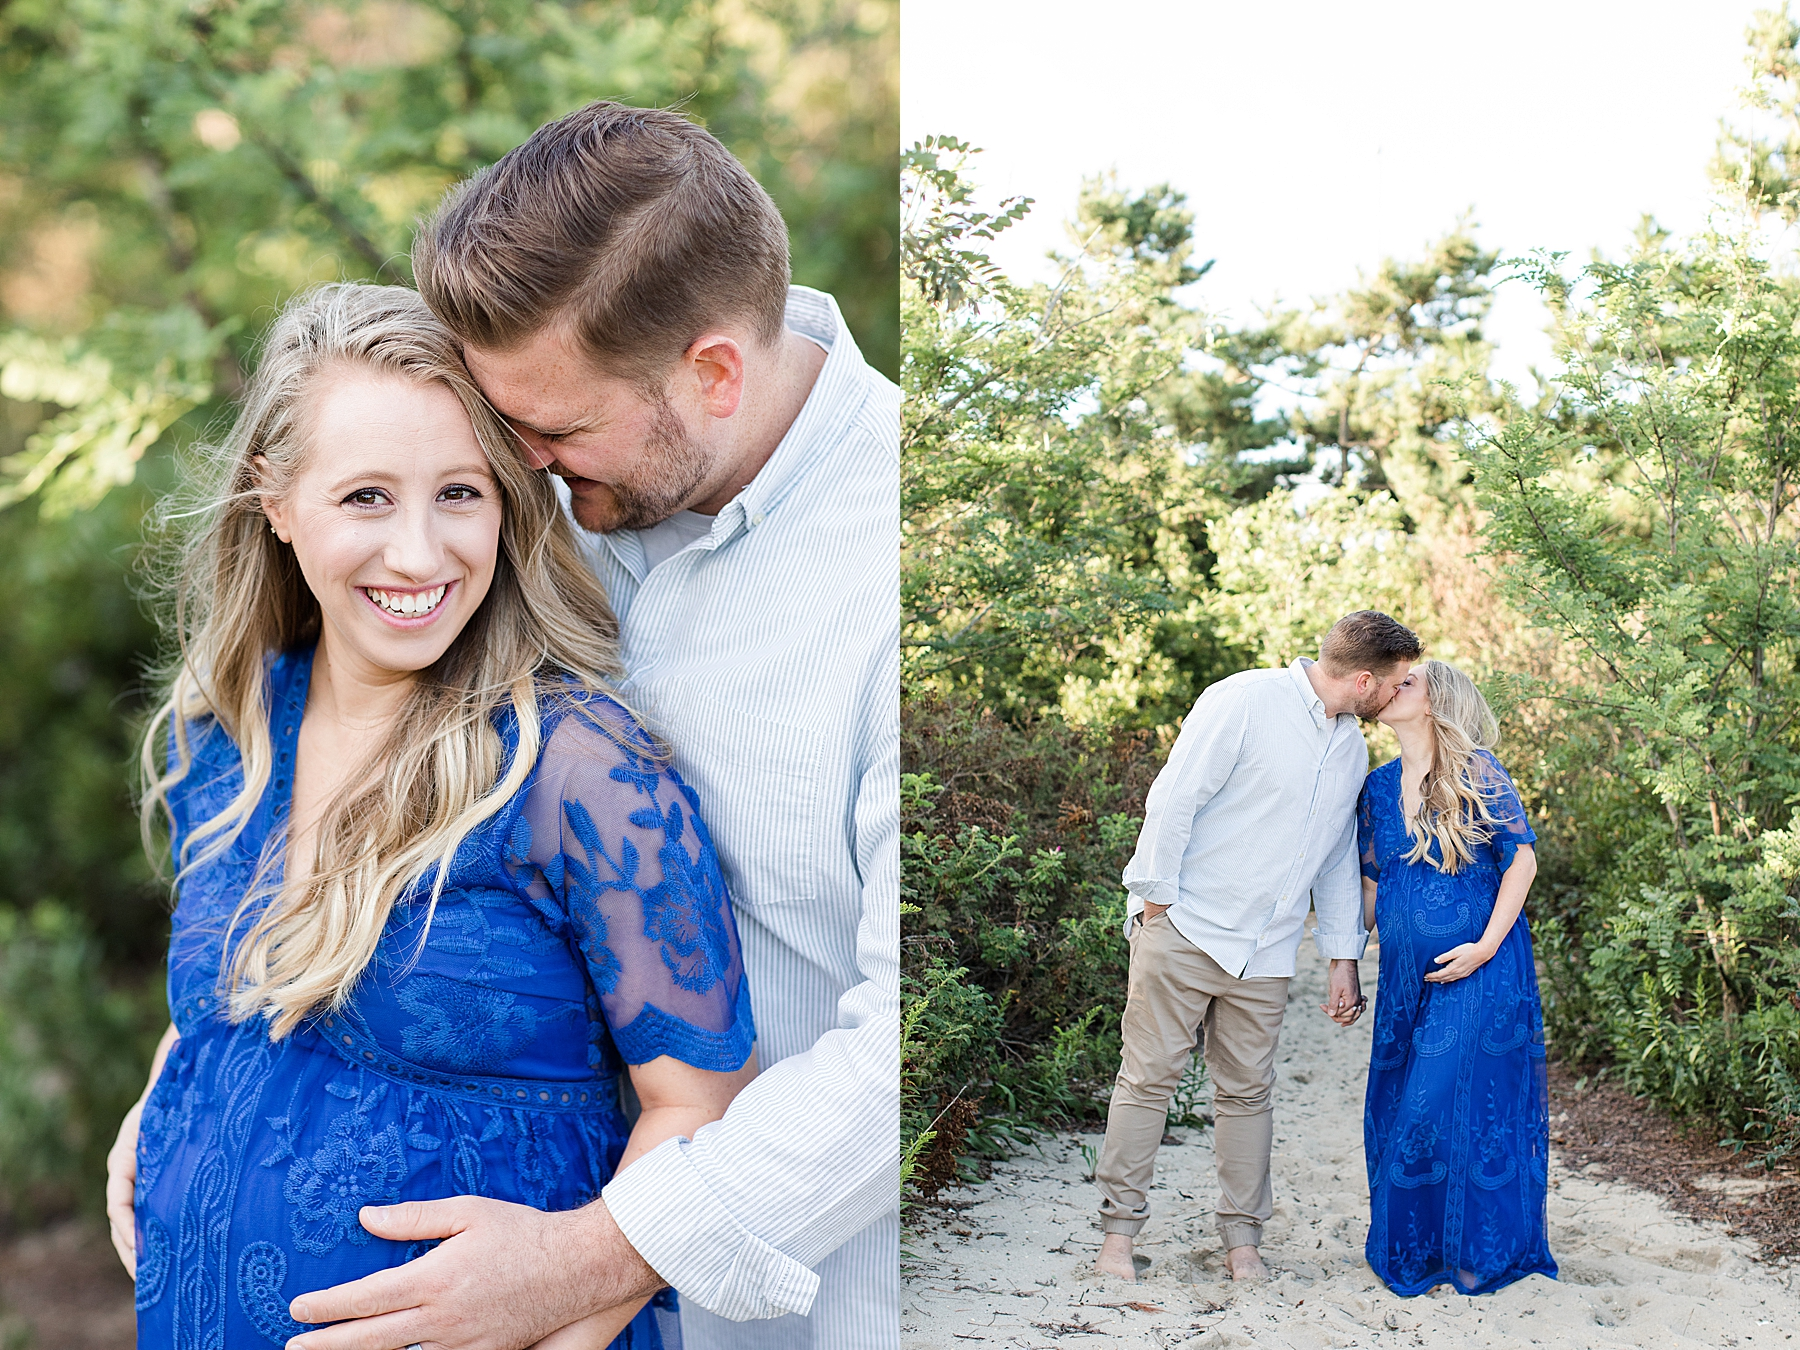 Caitlin + Sean's Maternity Photos at Belmar Beach